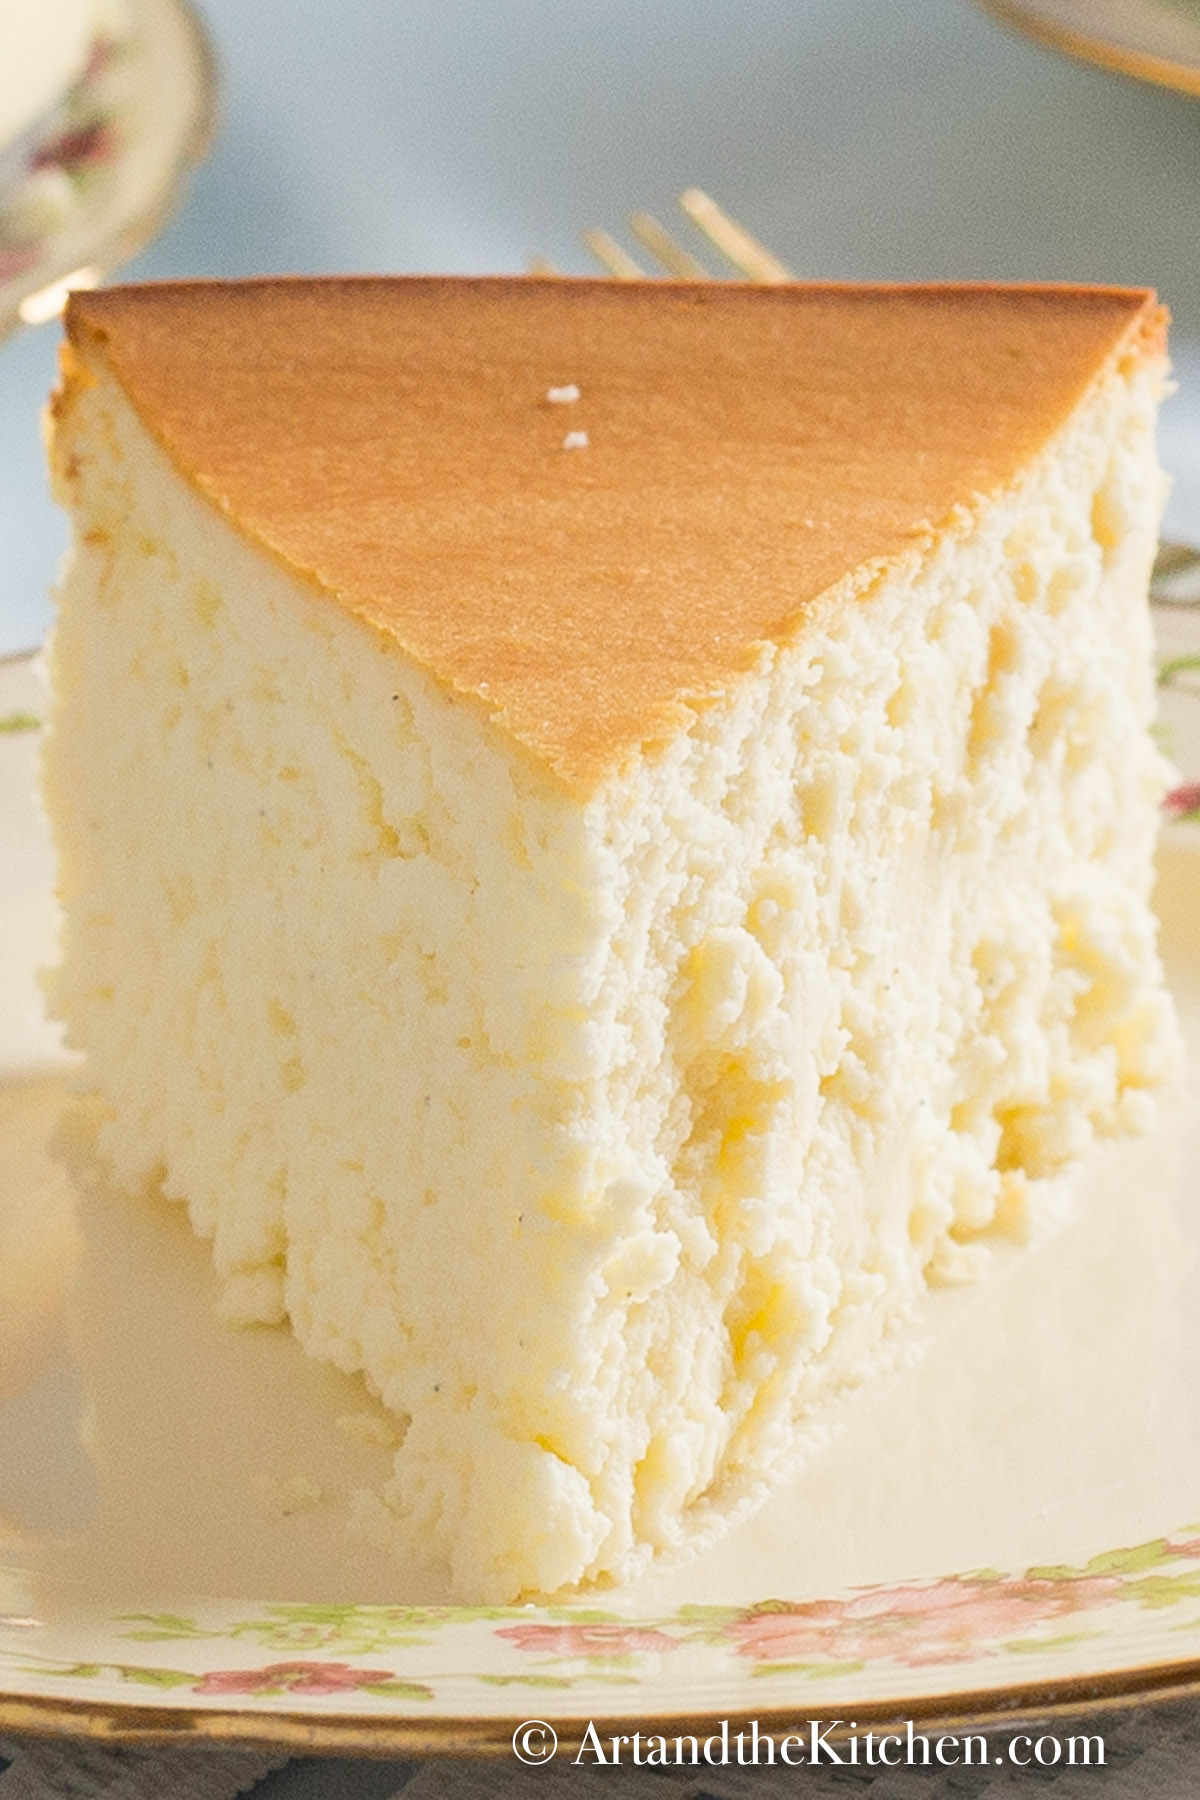 Tall And Creamy New York Cheesecake Art And The Kitchen